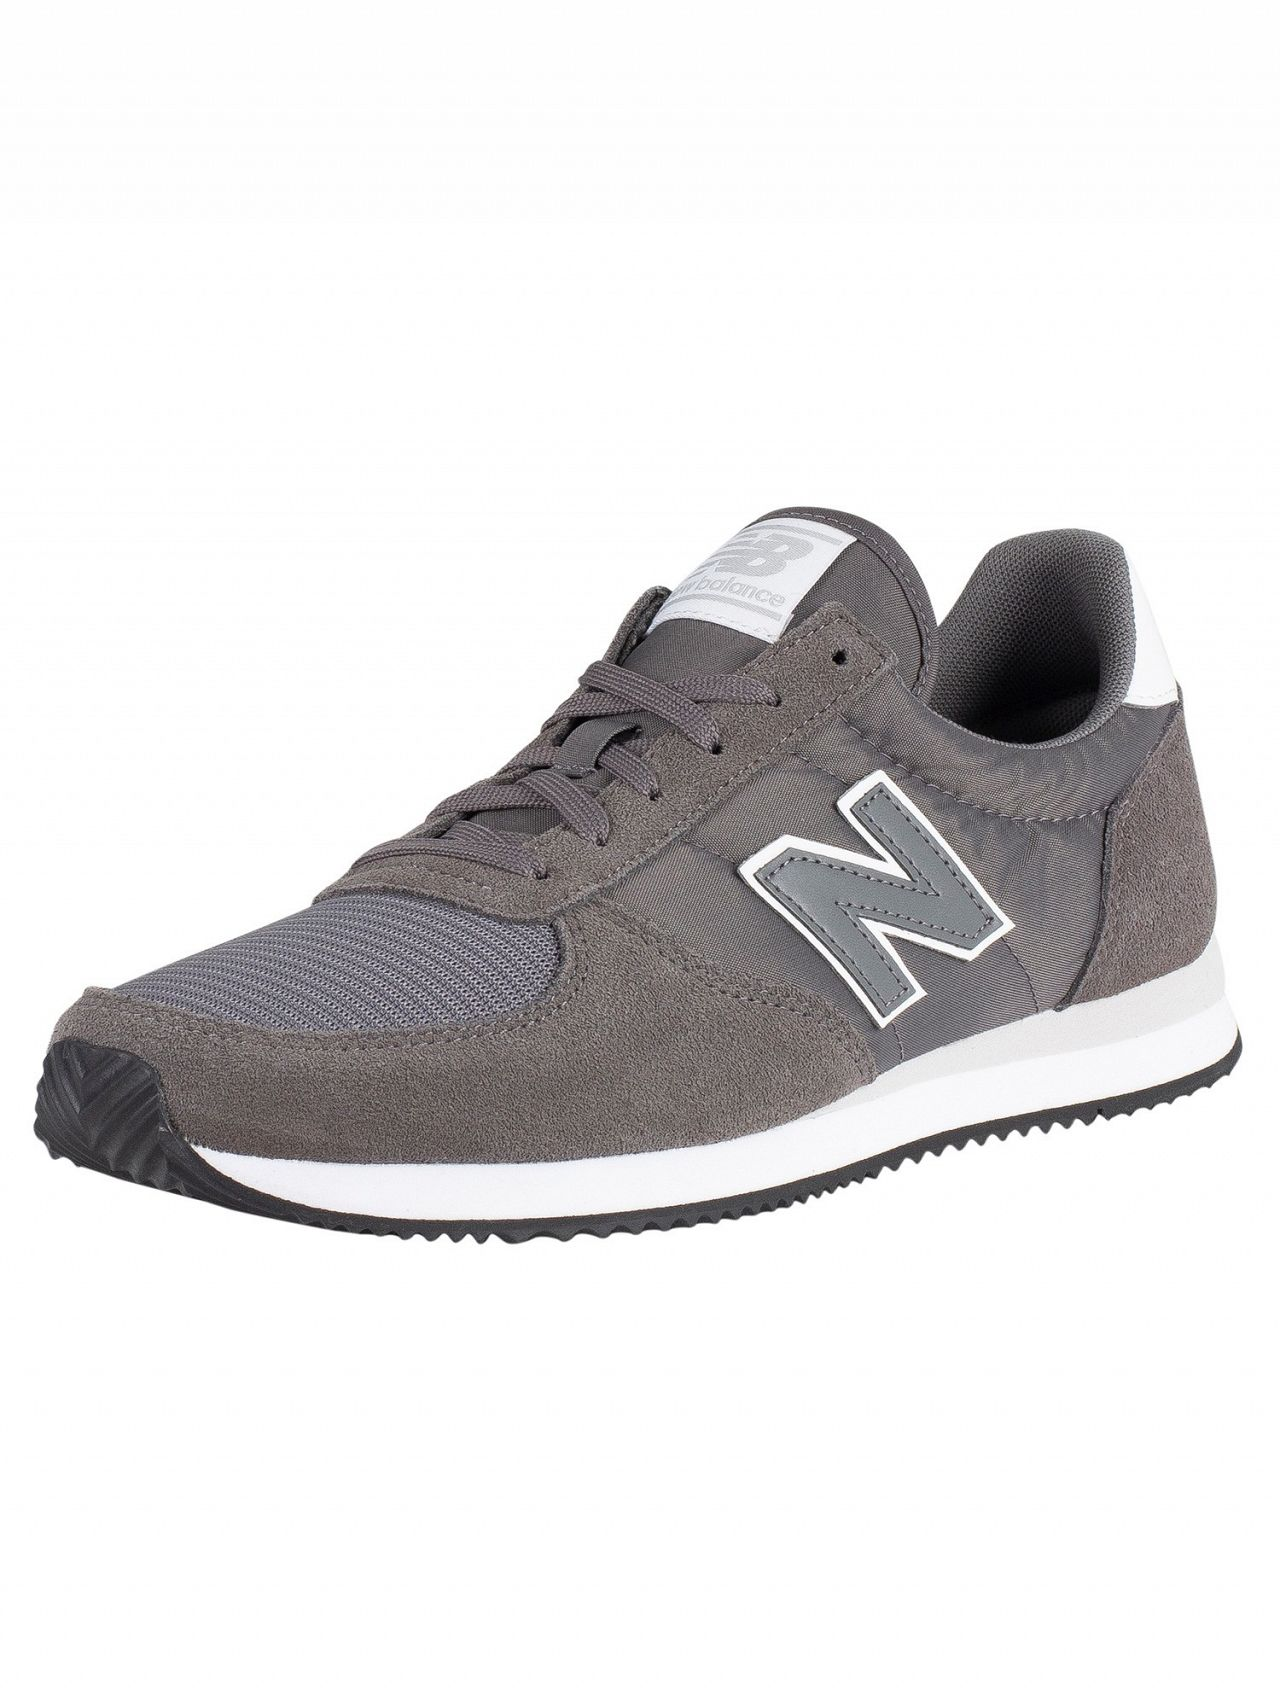 5ea3abb7eb New Balance Lead/White 220 Suede Trainers